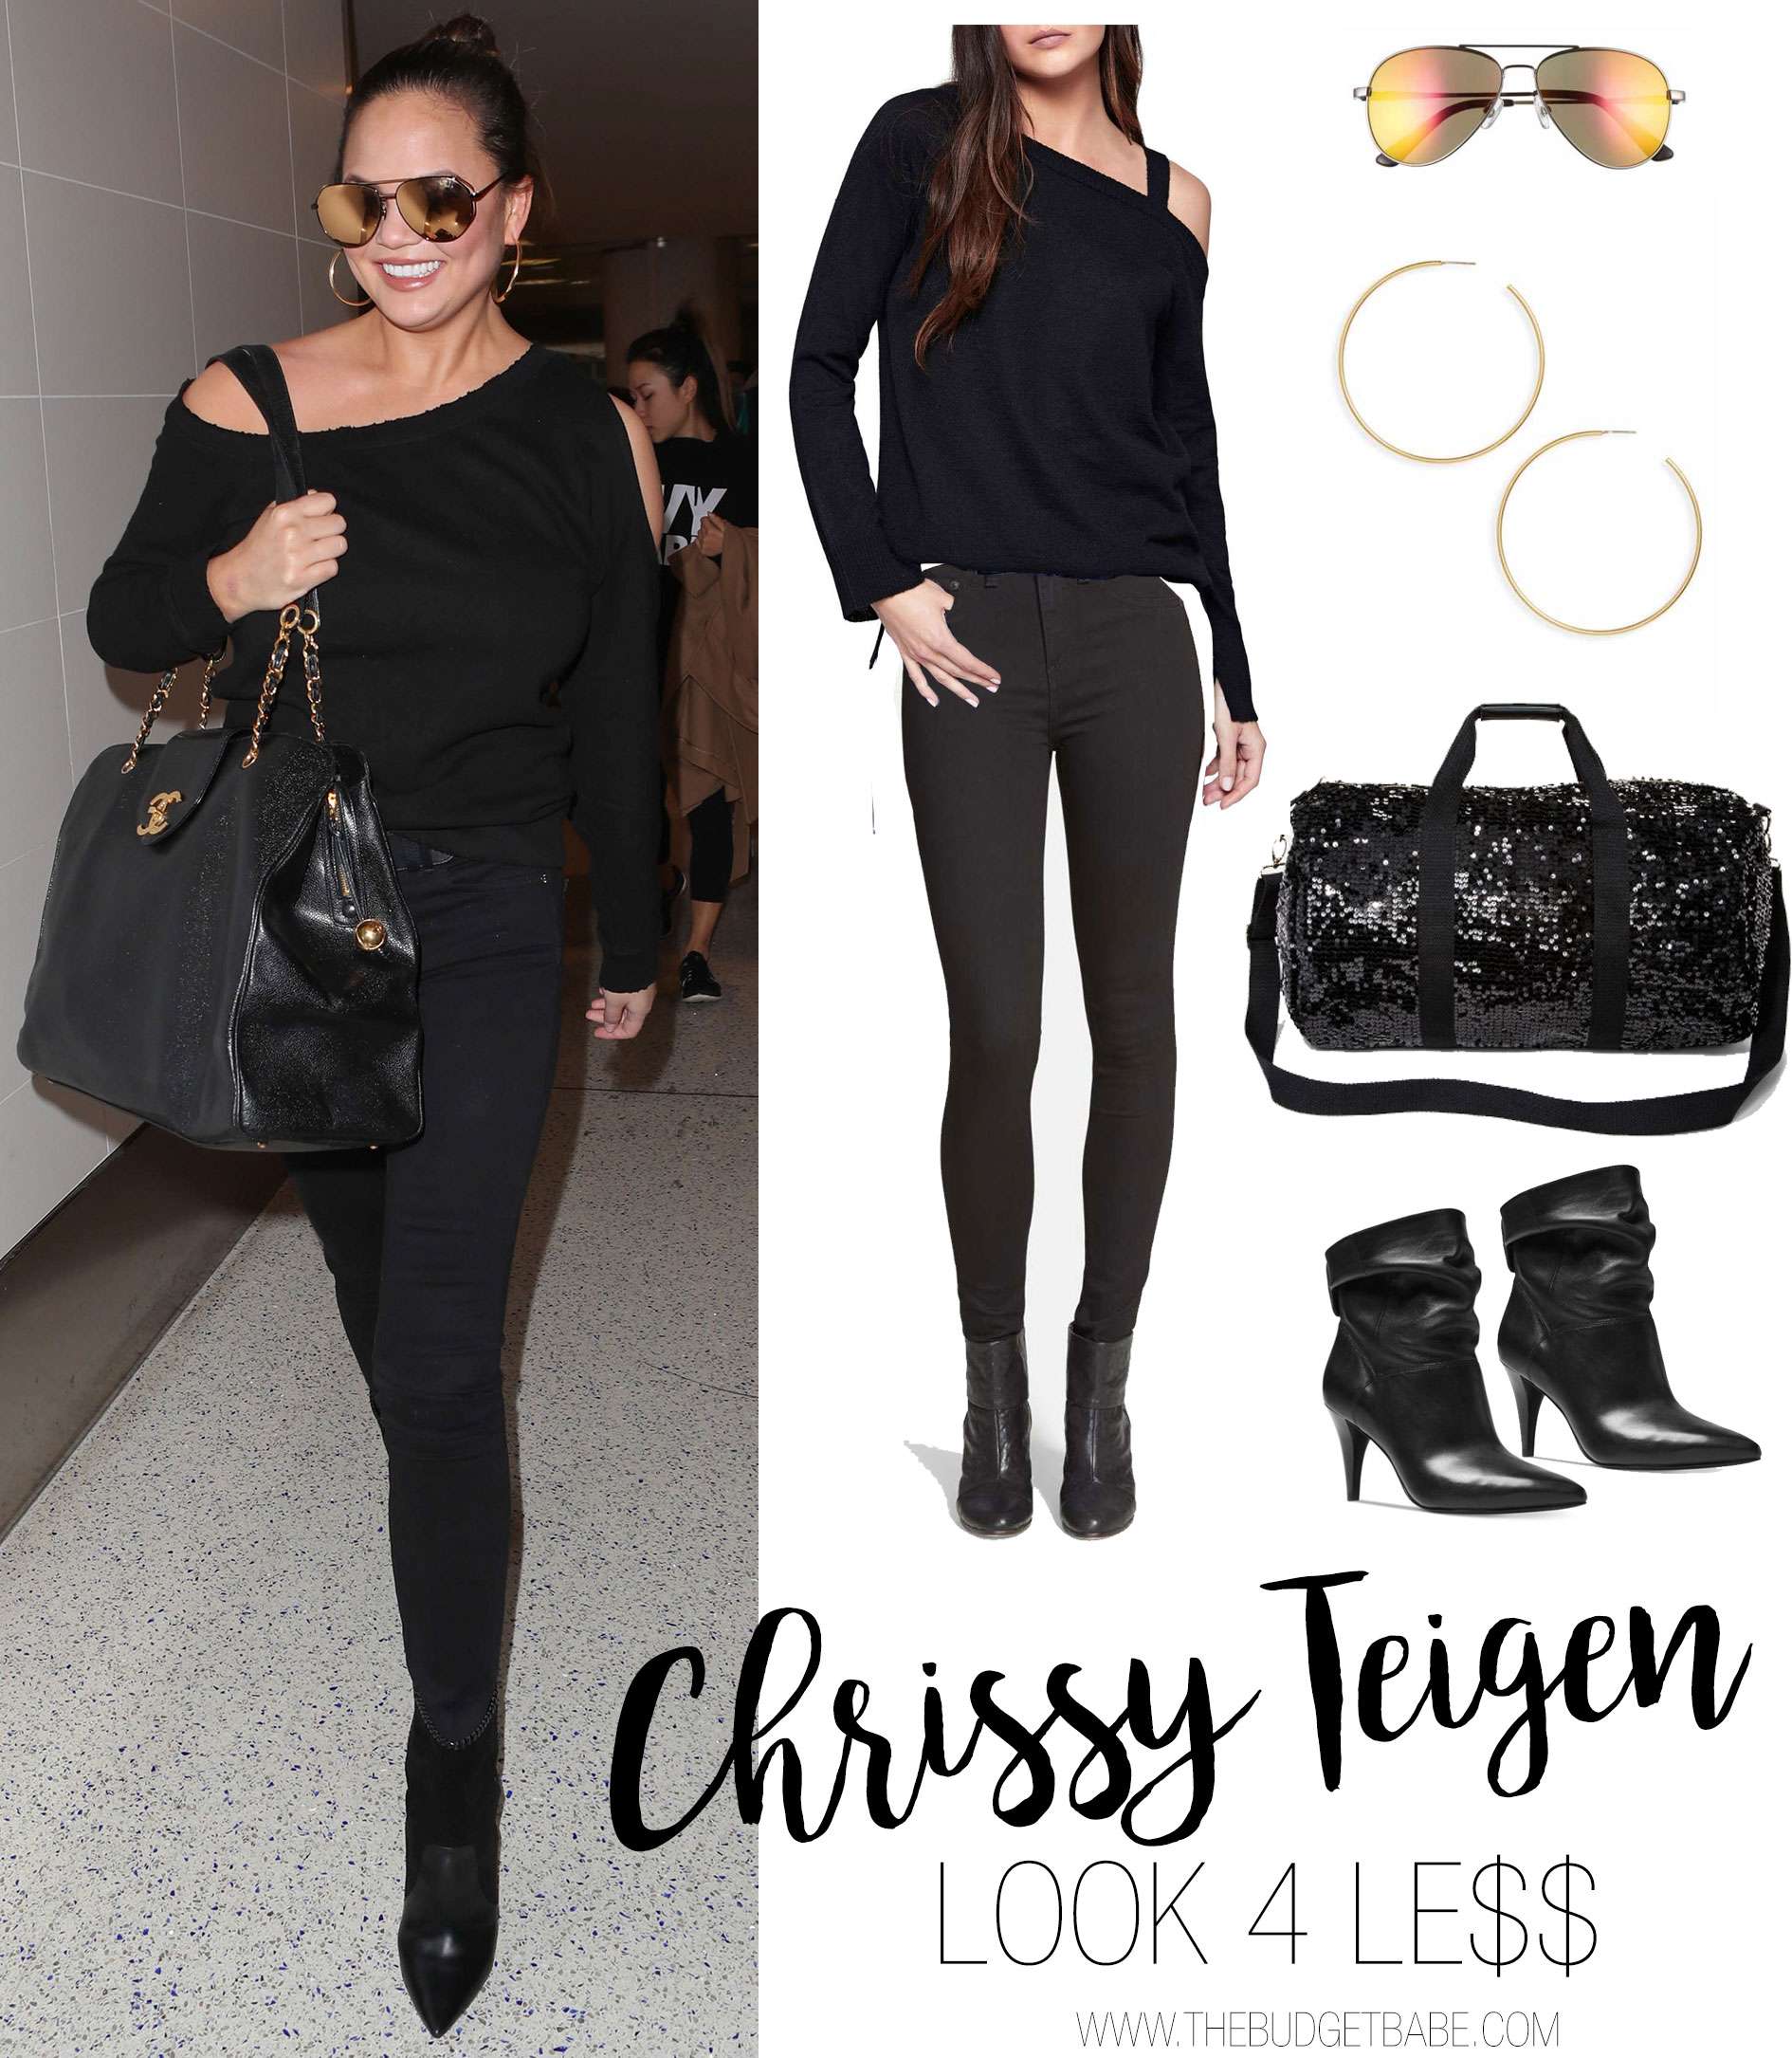 Chrissy Teigen wears a cold shoulder top and Chanel bag while traveling.